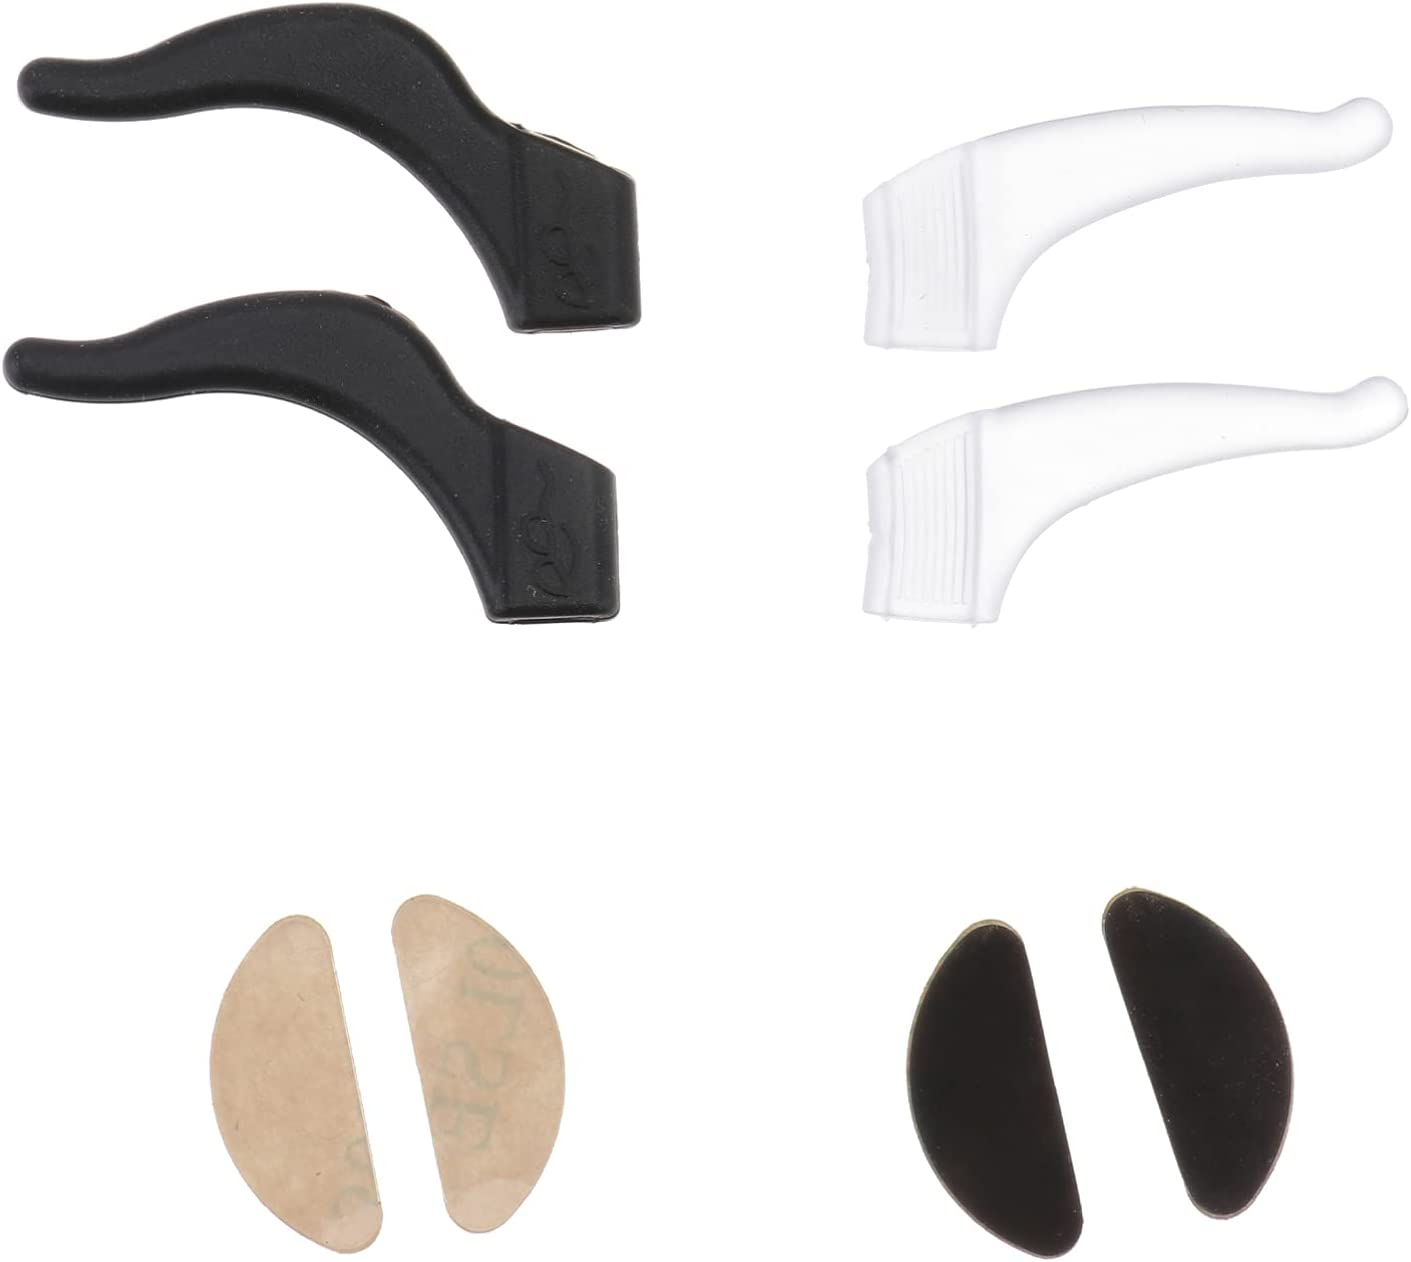 favorite HEALLILY 1 High material Set Eyewear Comfort Tips Replacement Glasses Silicone